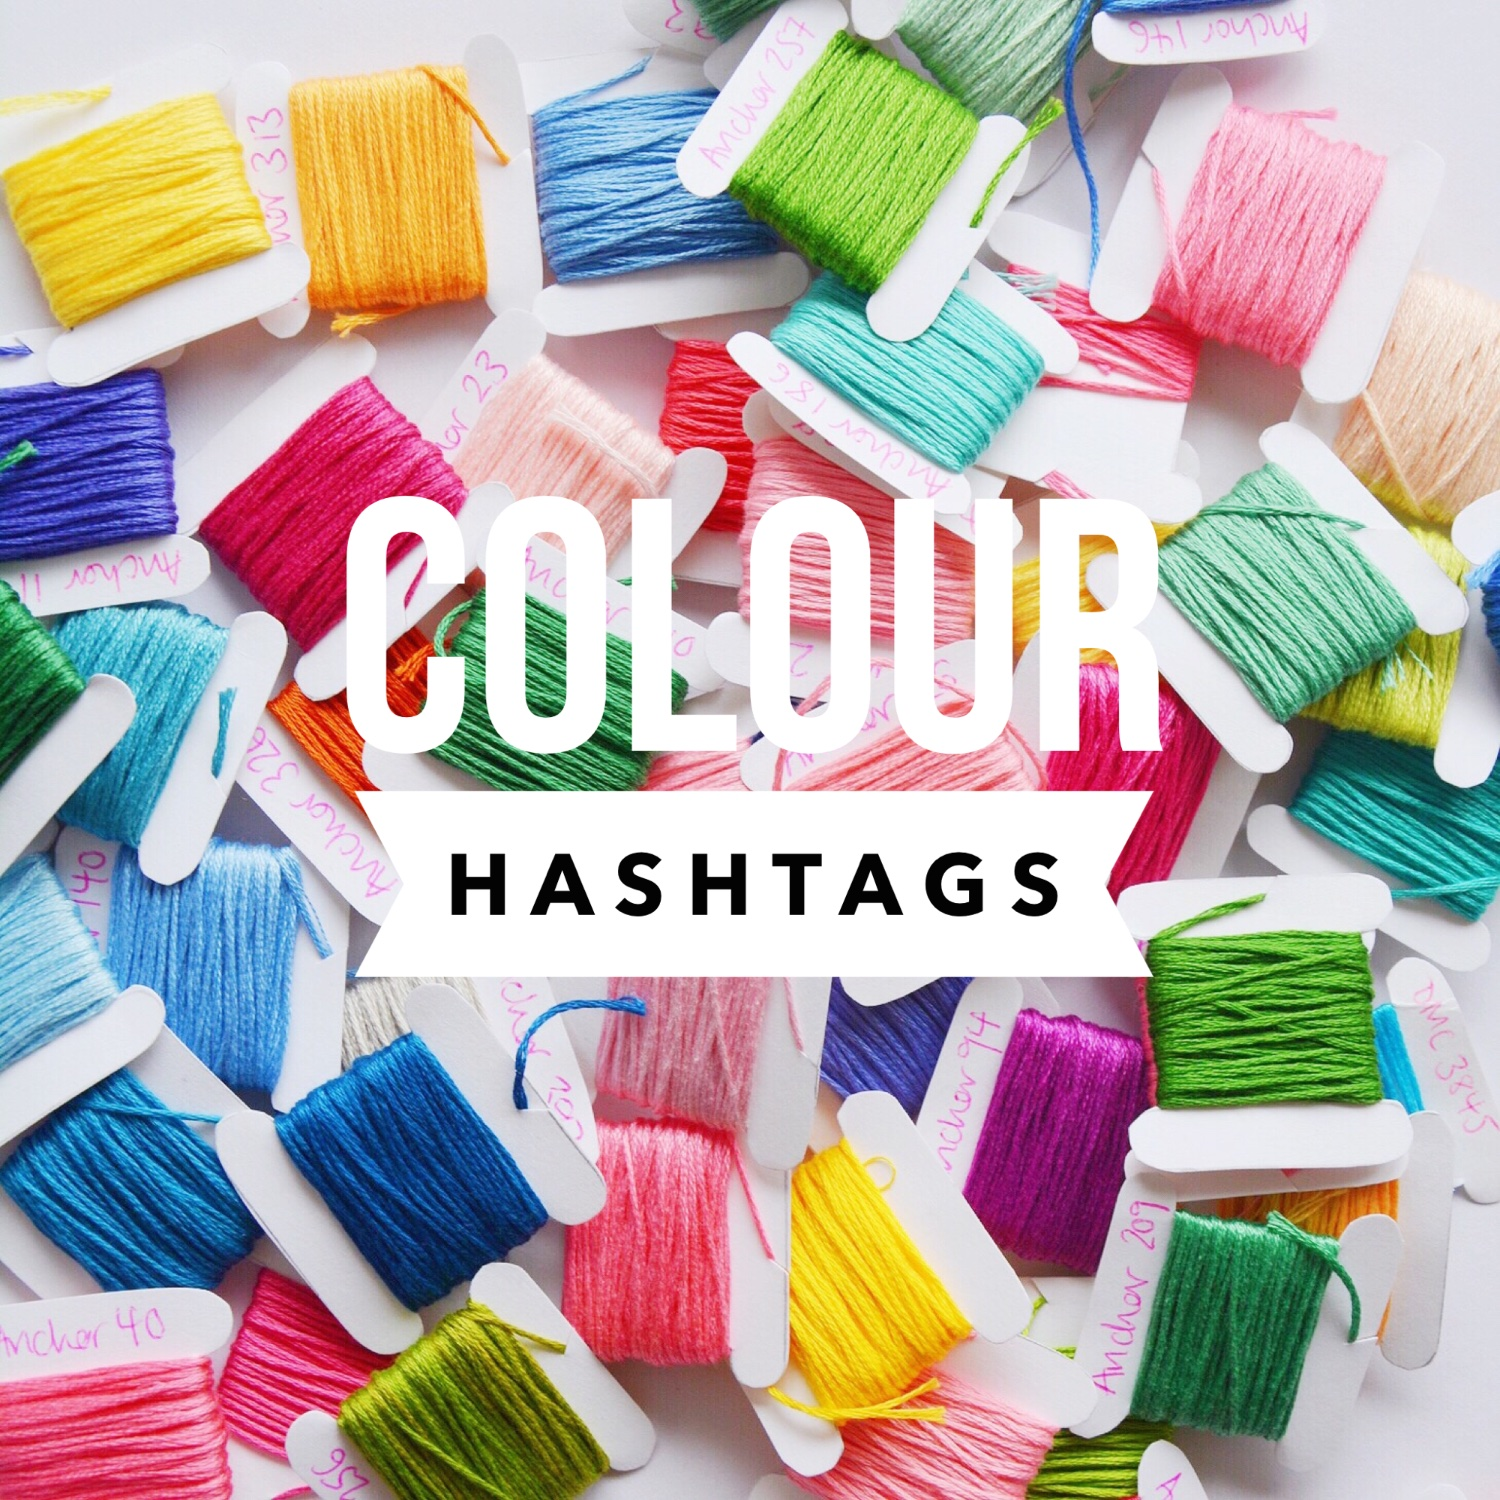 Colour hashtags | Hello! Hooray!